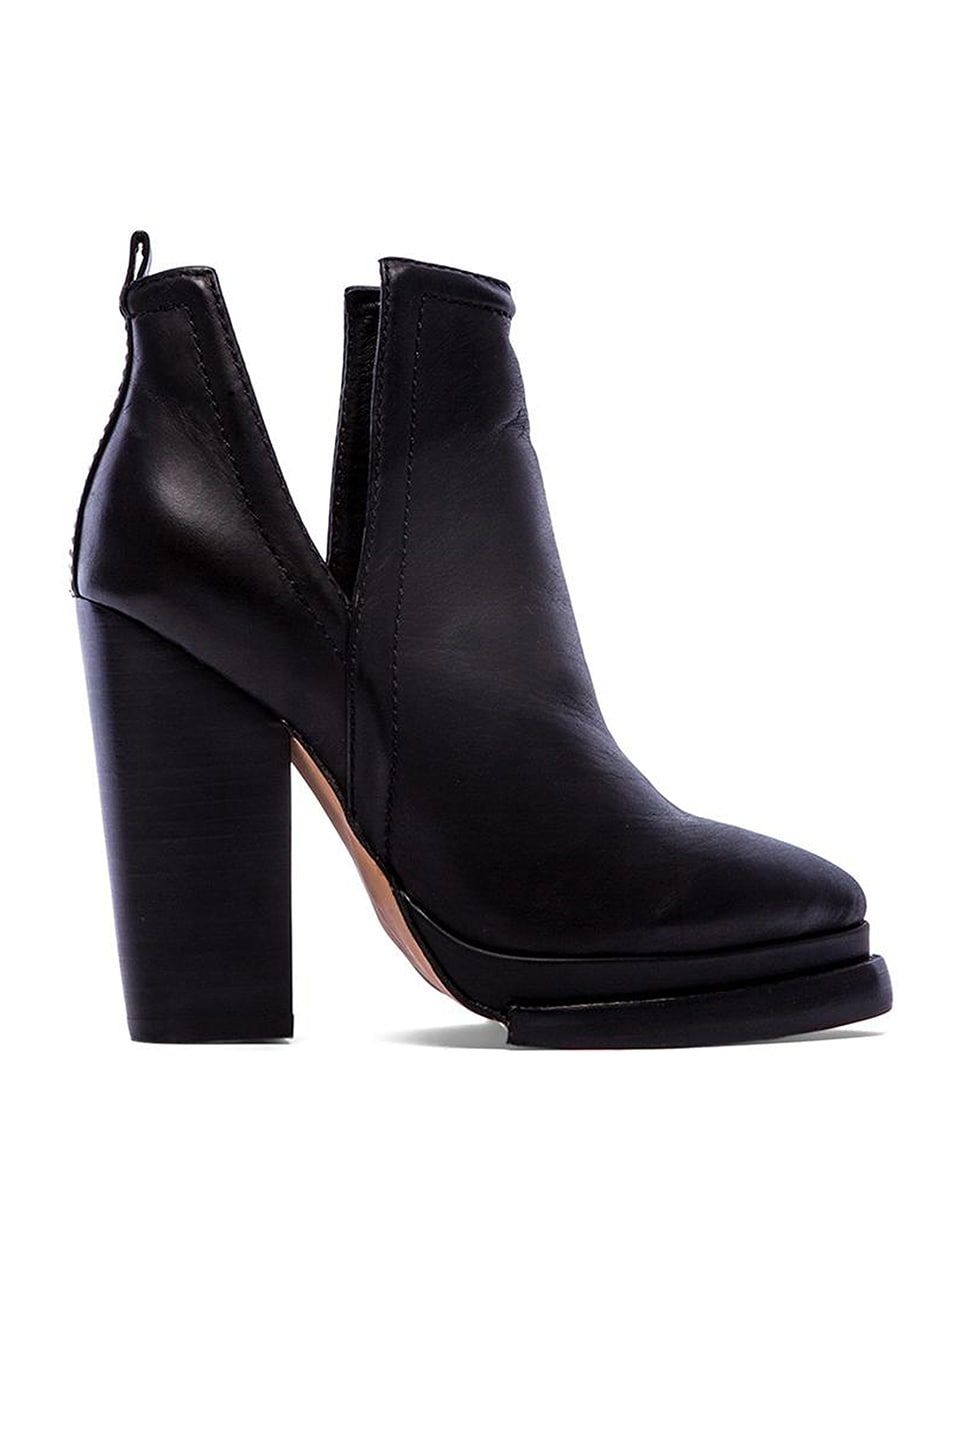 Jeffrey Campbell Whose Next bootie in Black